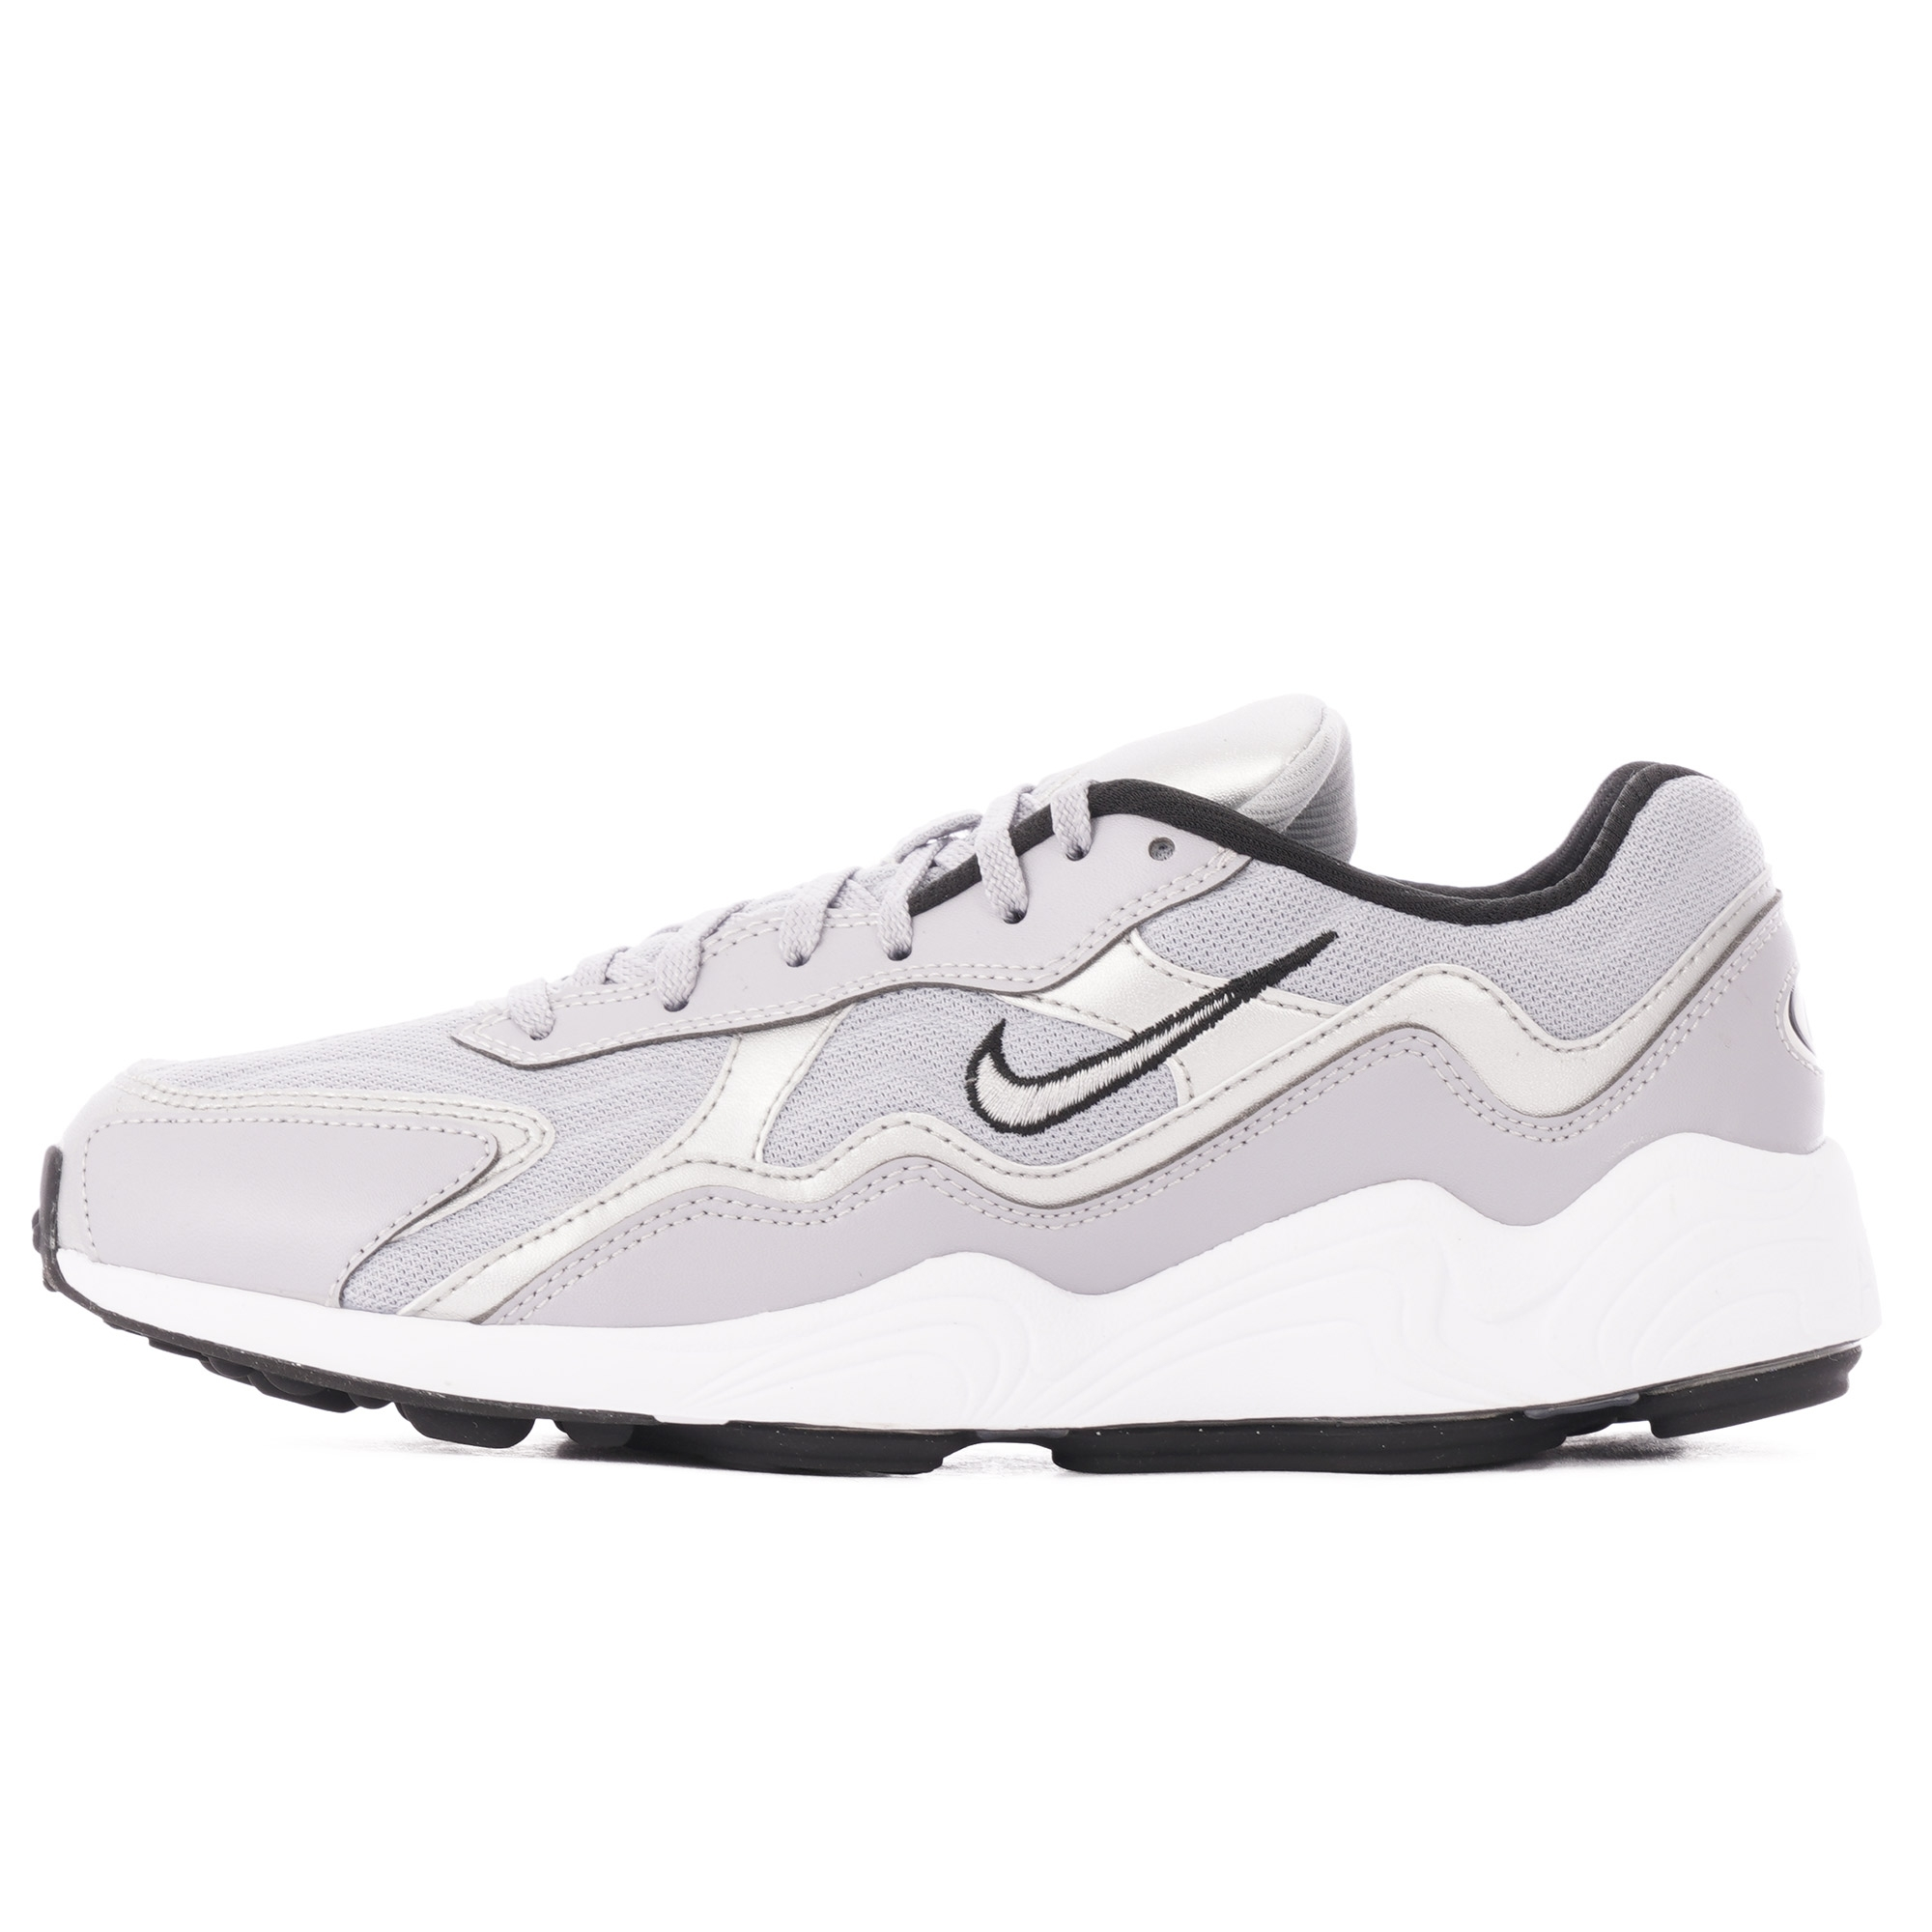 Nike Air Zoom Alpha Mens Wolf Grey Casual Lifestyle Sneakers Shoes BQ8800 001